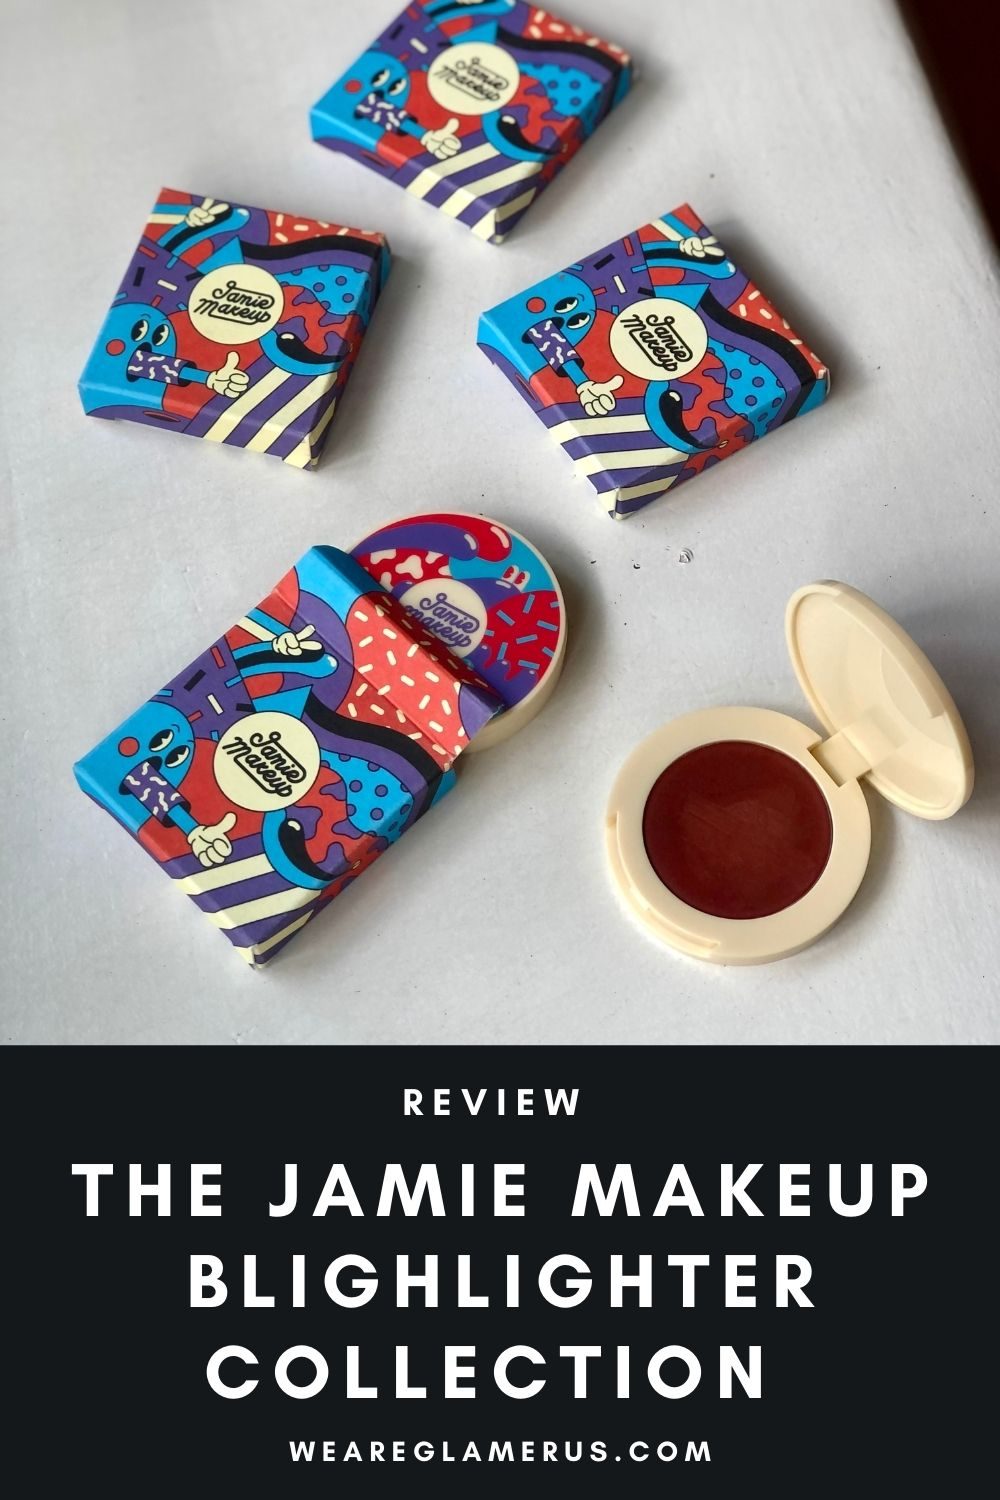 Check out my latest review on these beautiful cream blushes from Jamie Makeup!